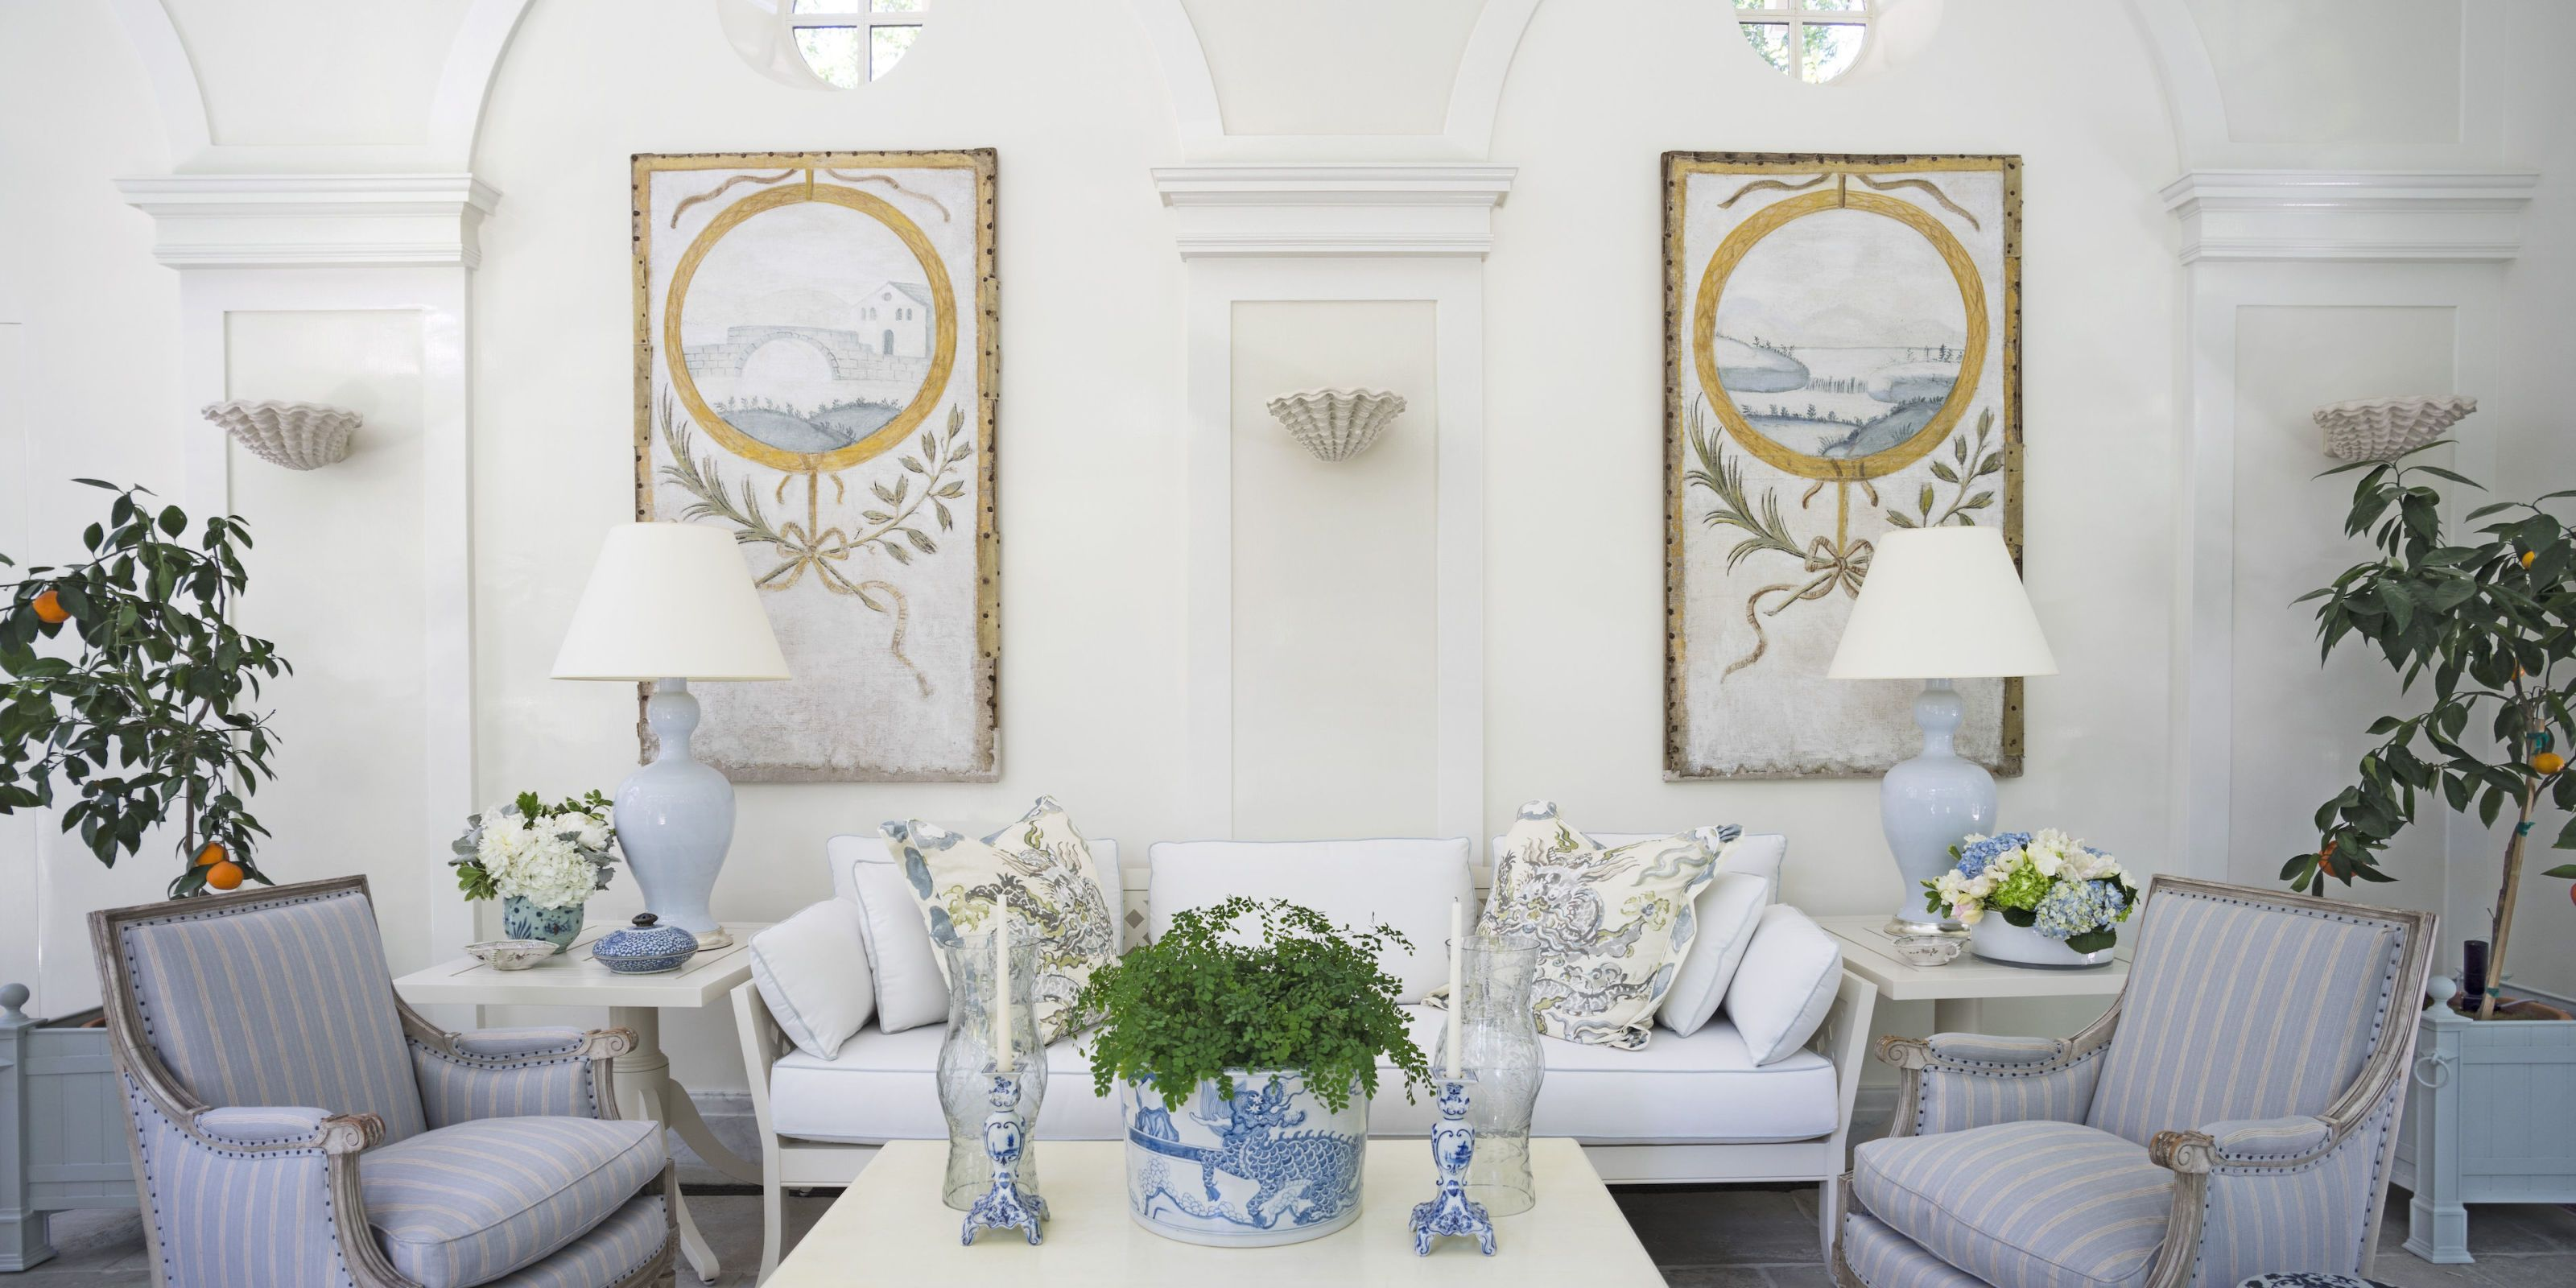 white rooms & 25+ Best White Room Ideas - How to Decorate an Elegant White Bedroom